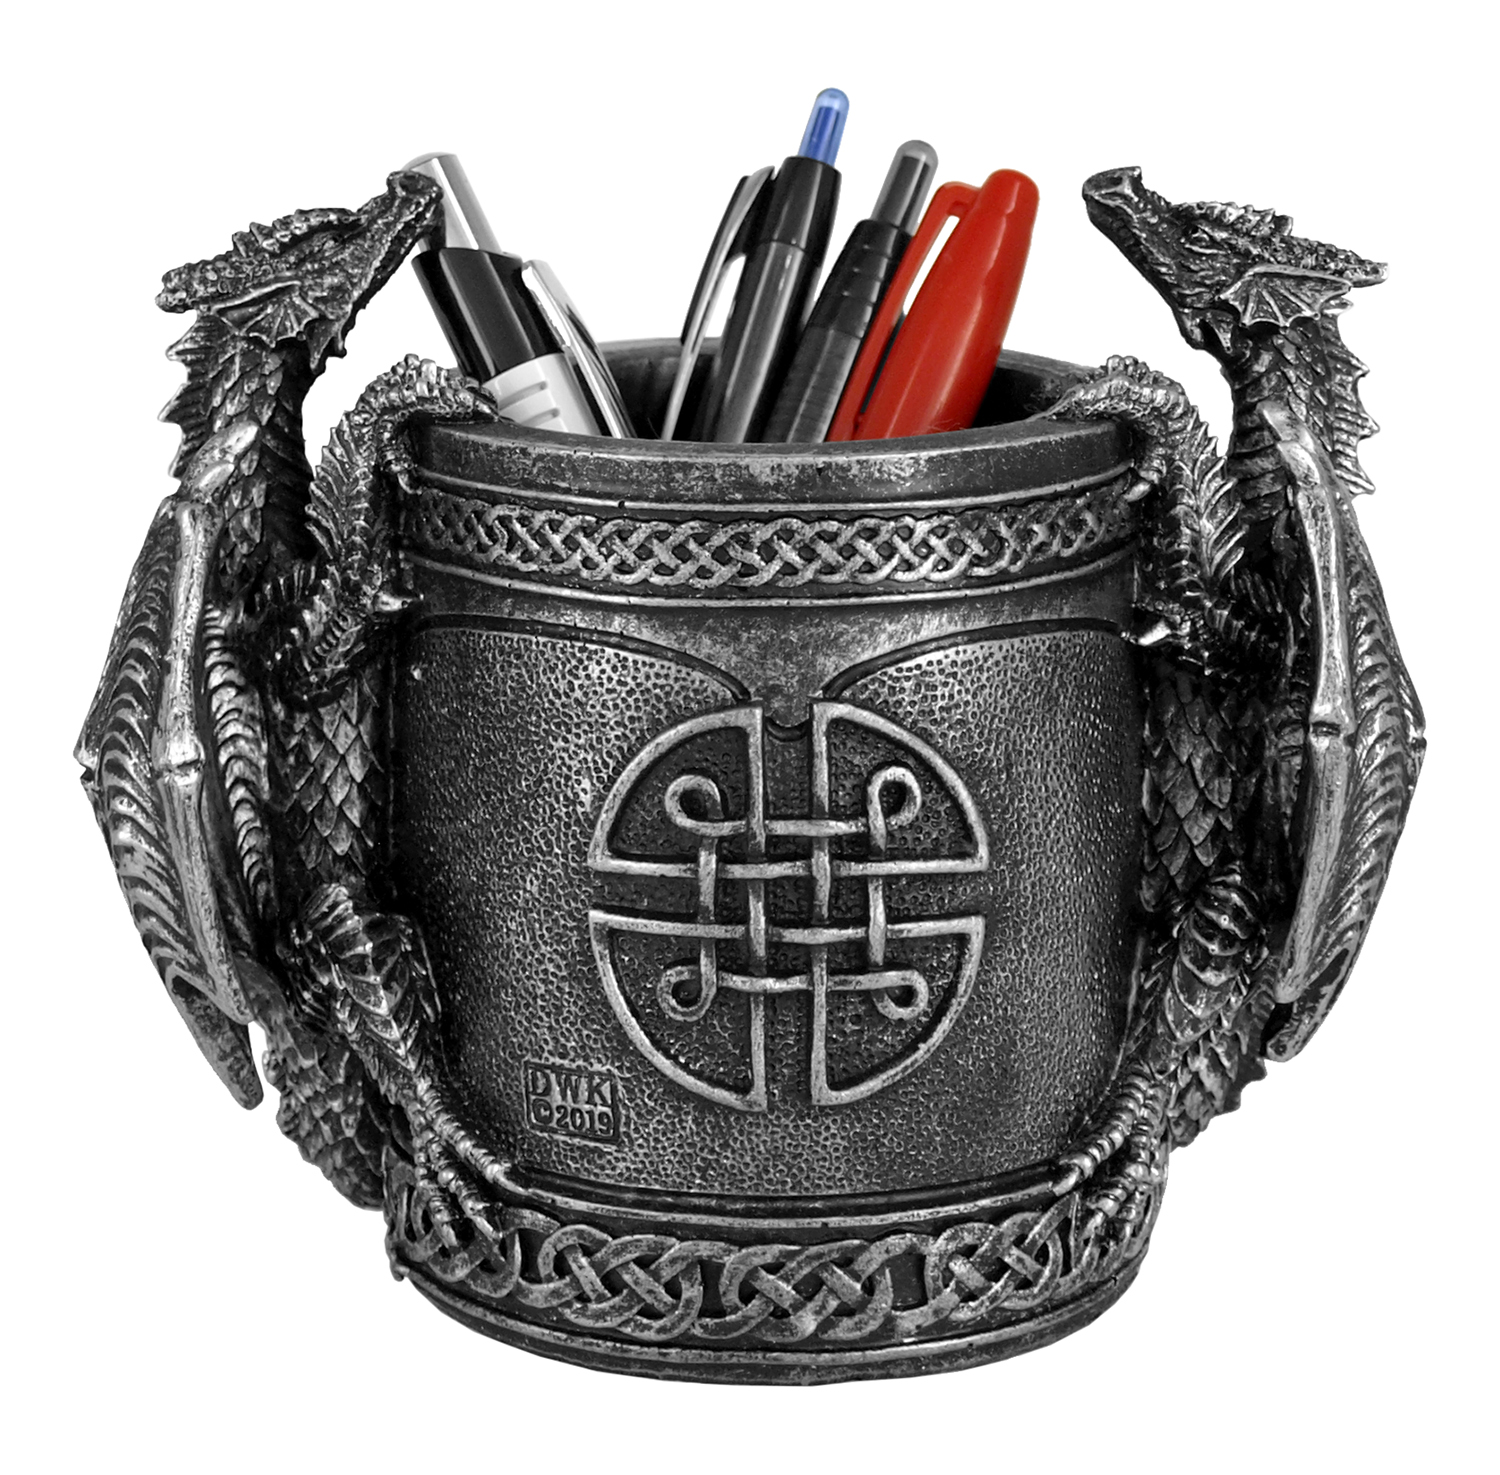 6.5 in Literary Beasts Pen and Pencil Holder